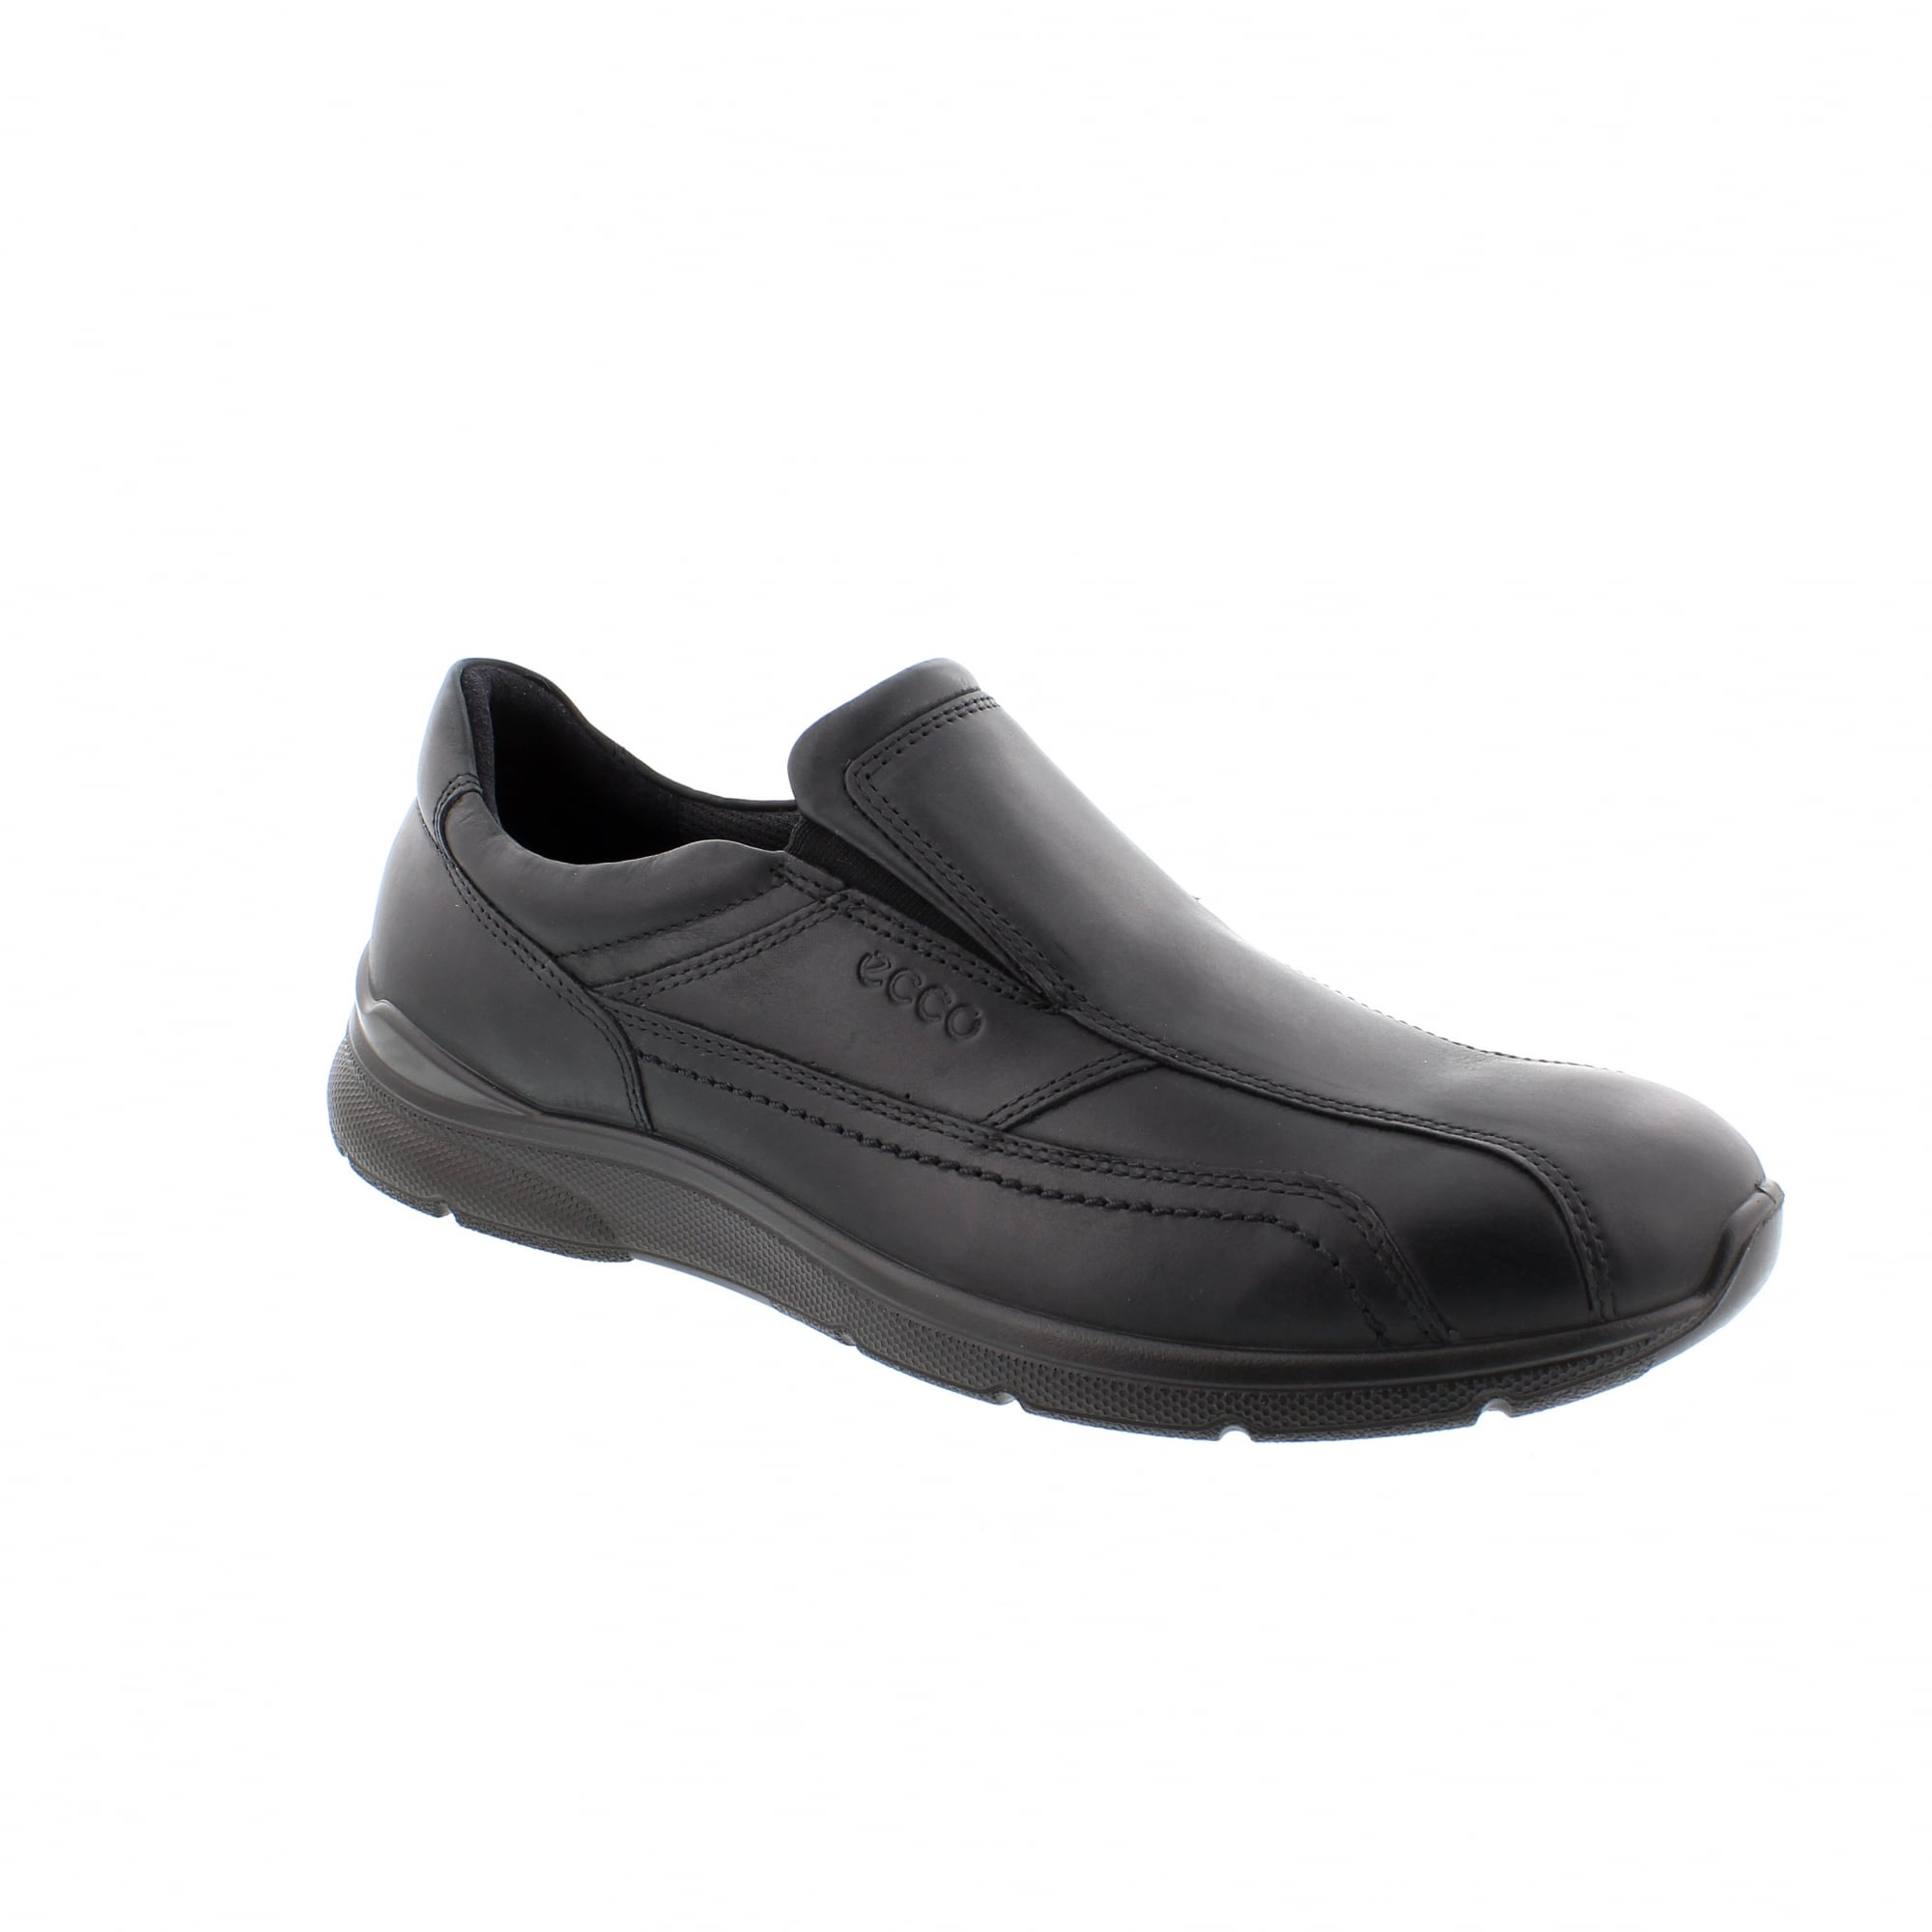 c1f7f286142e Ecco Irving 511524-02001 Mens Slip On Shoes